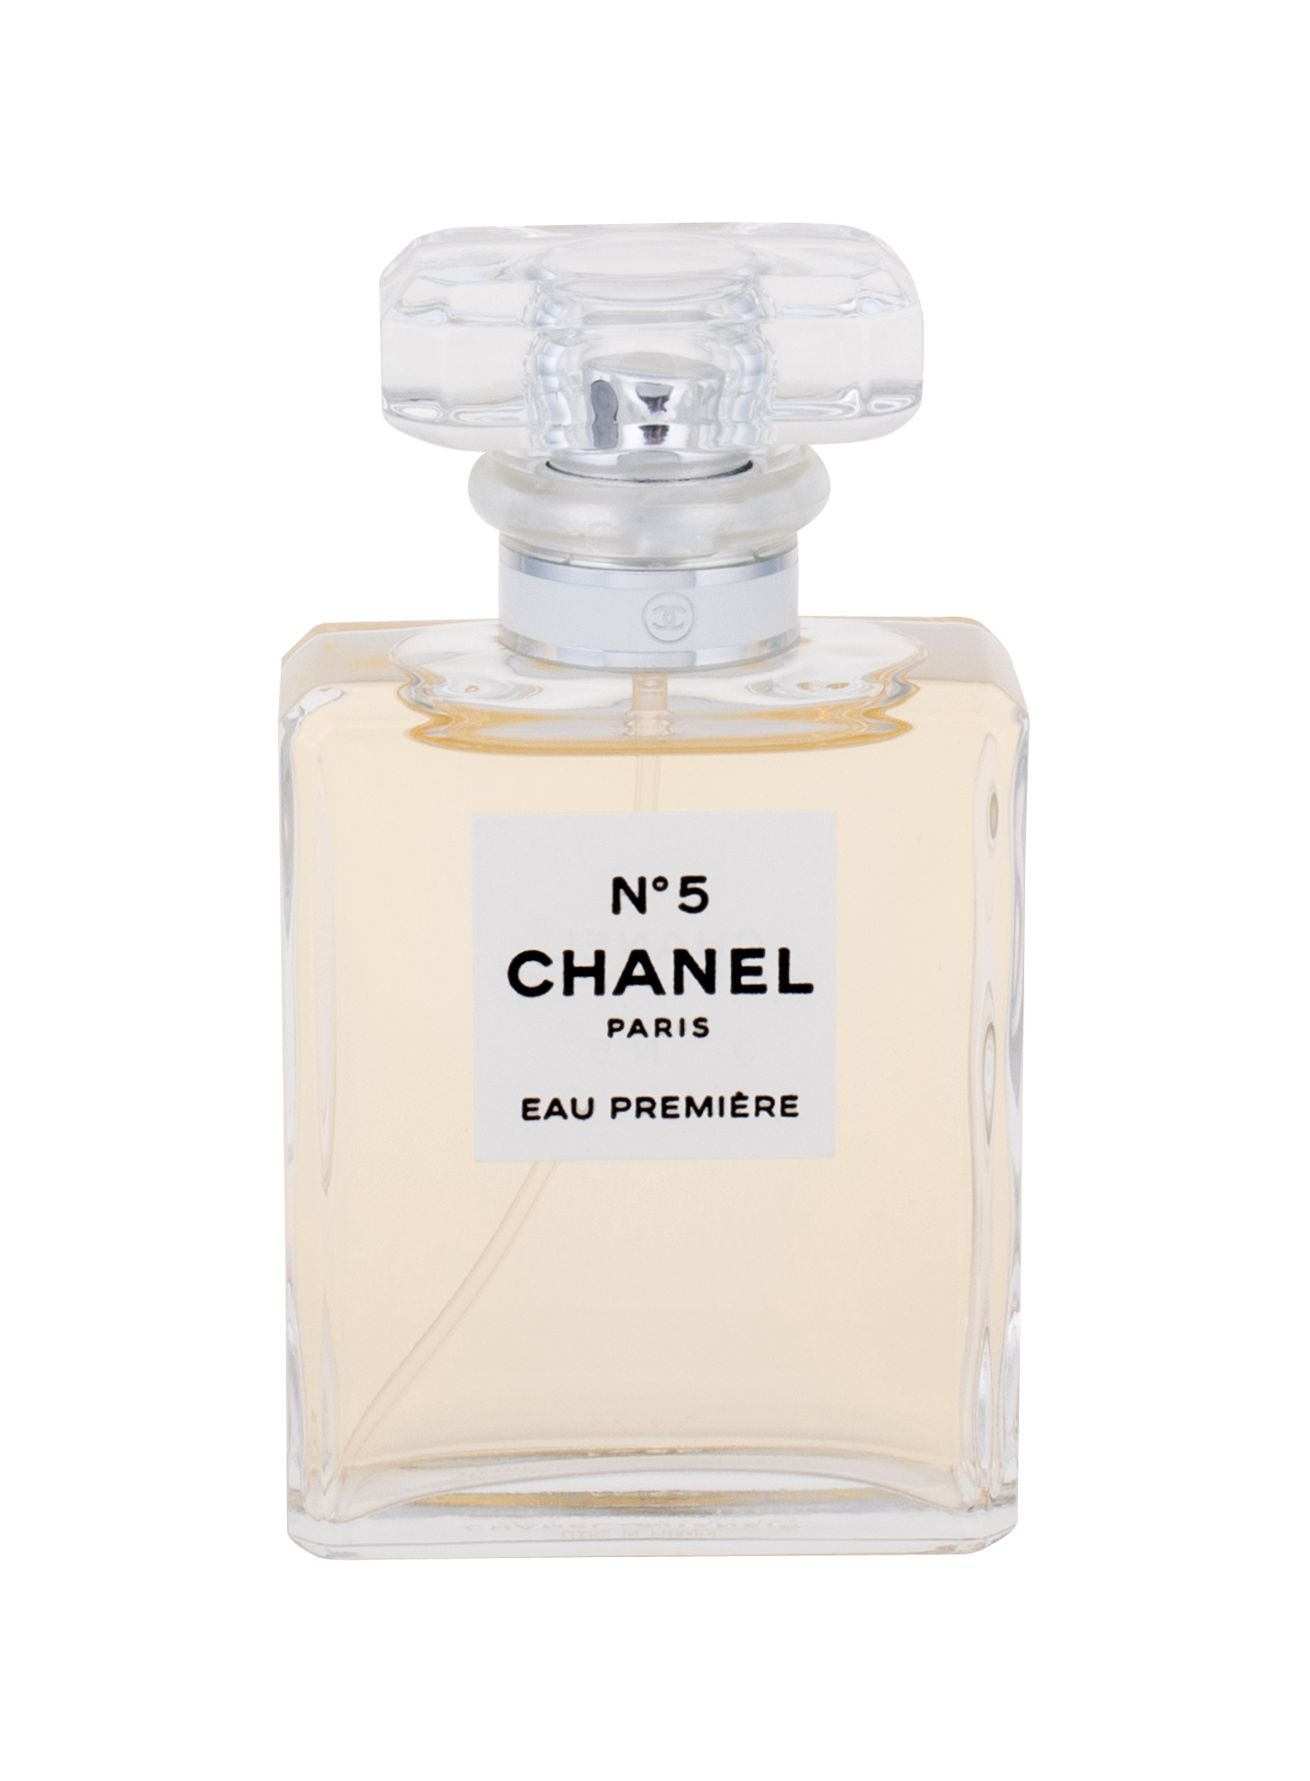 Chanel No.5 Eau Premiere EDP 35ml